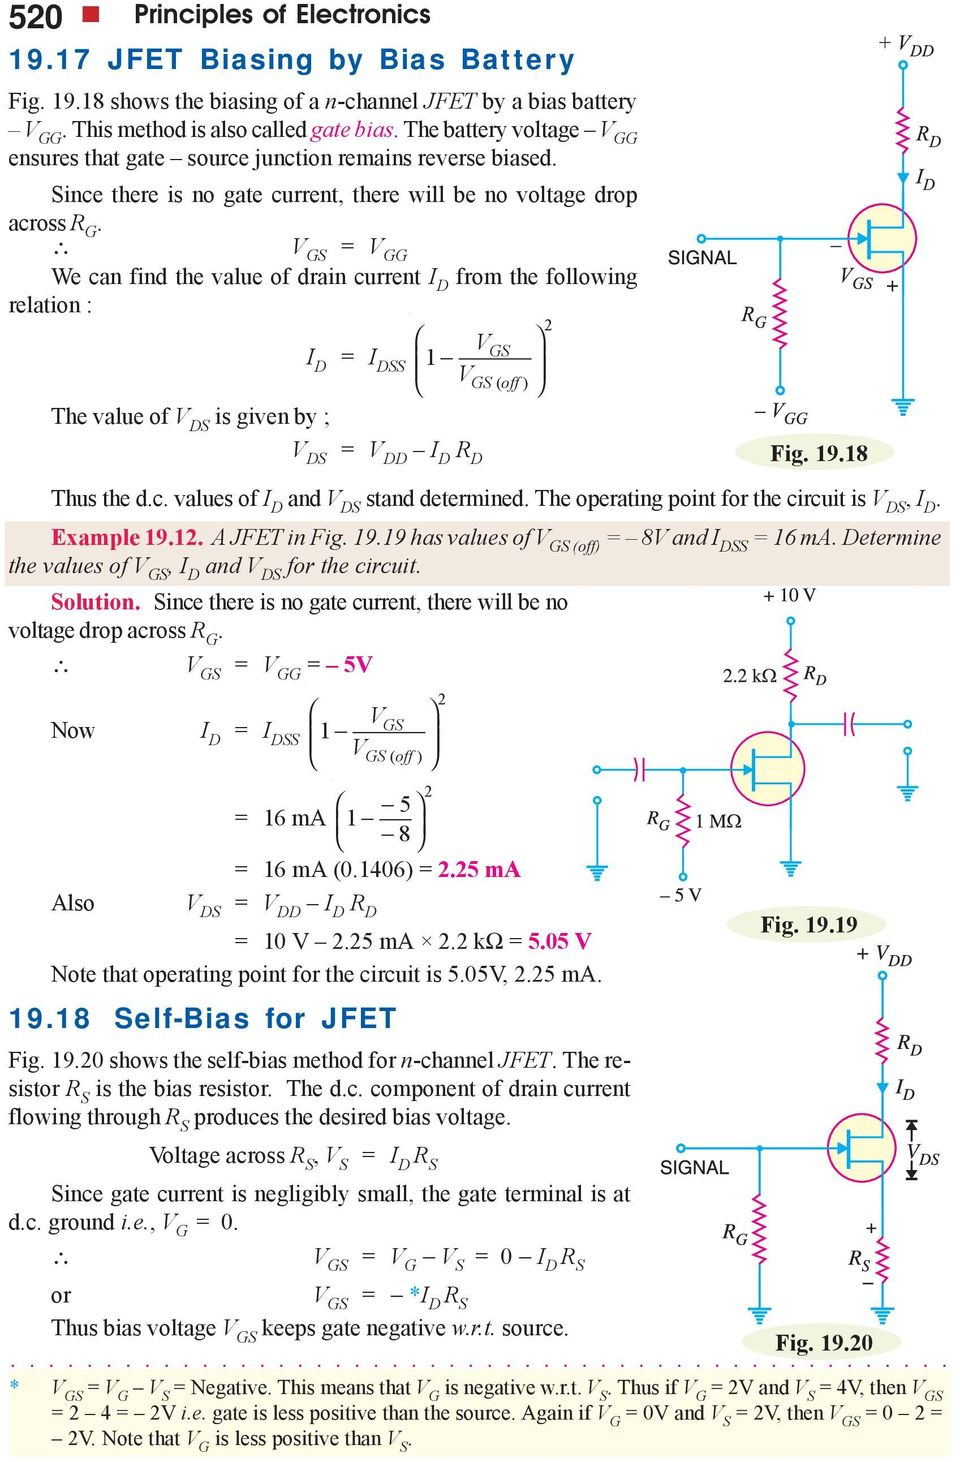 Field Effect Transistors Pdf Mosfet Circuit Http Amplifiercircuitnet 50wattmosfetamplifier D I Dss 1 Off The Value Of Ds Is Given By Dd